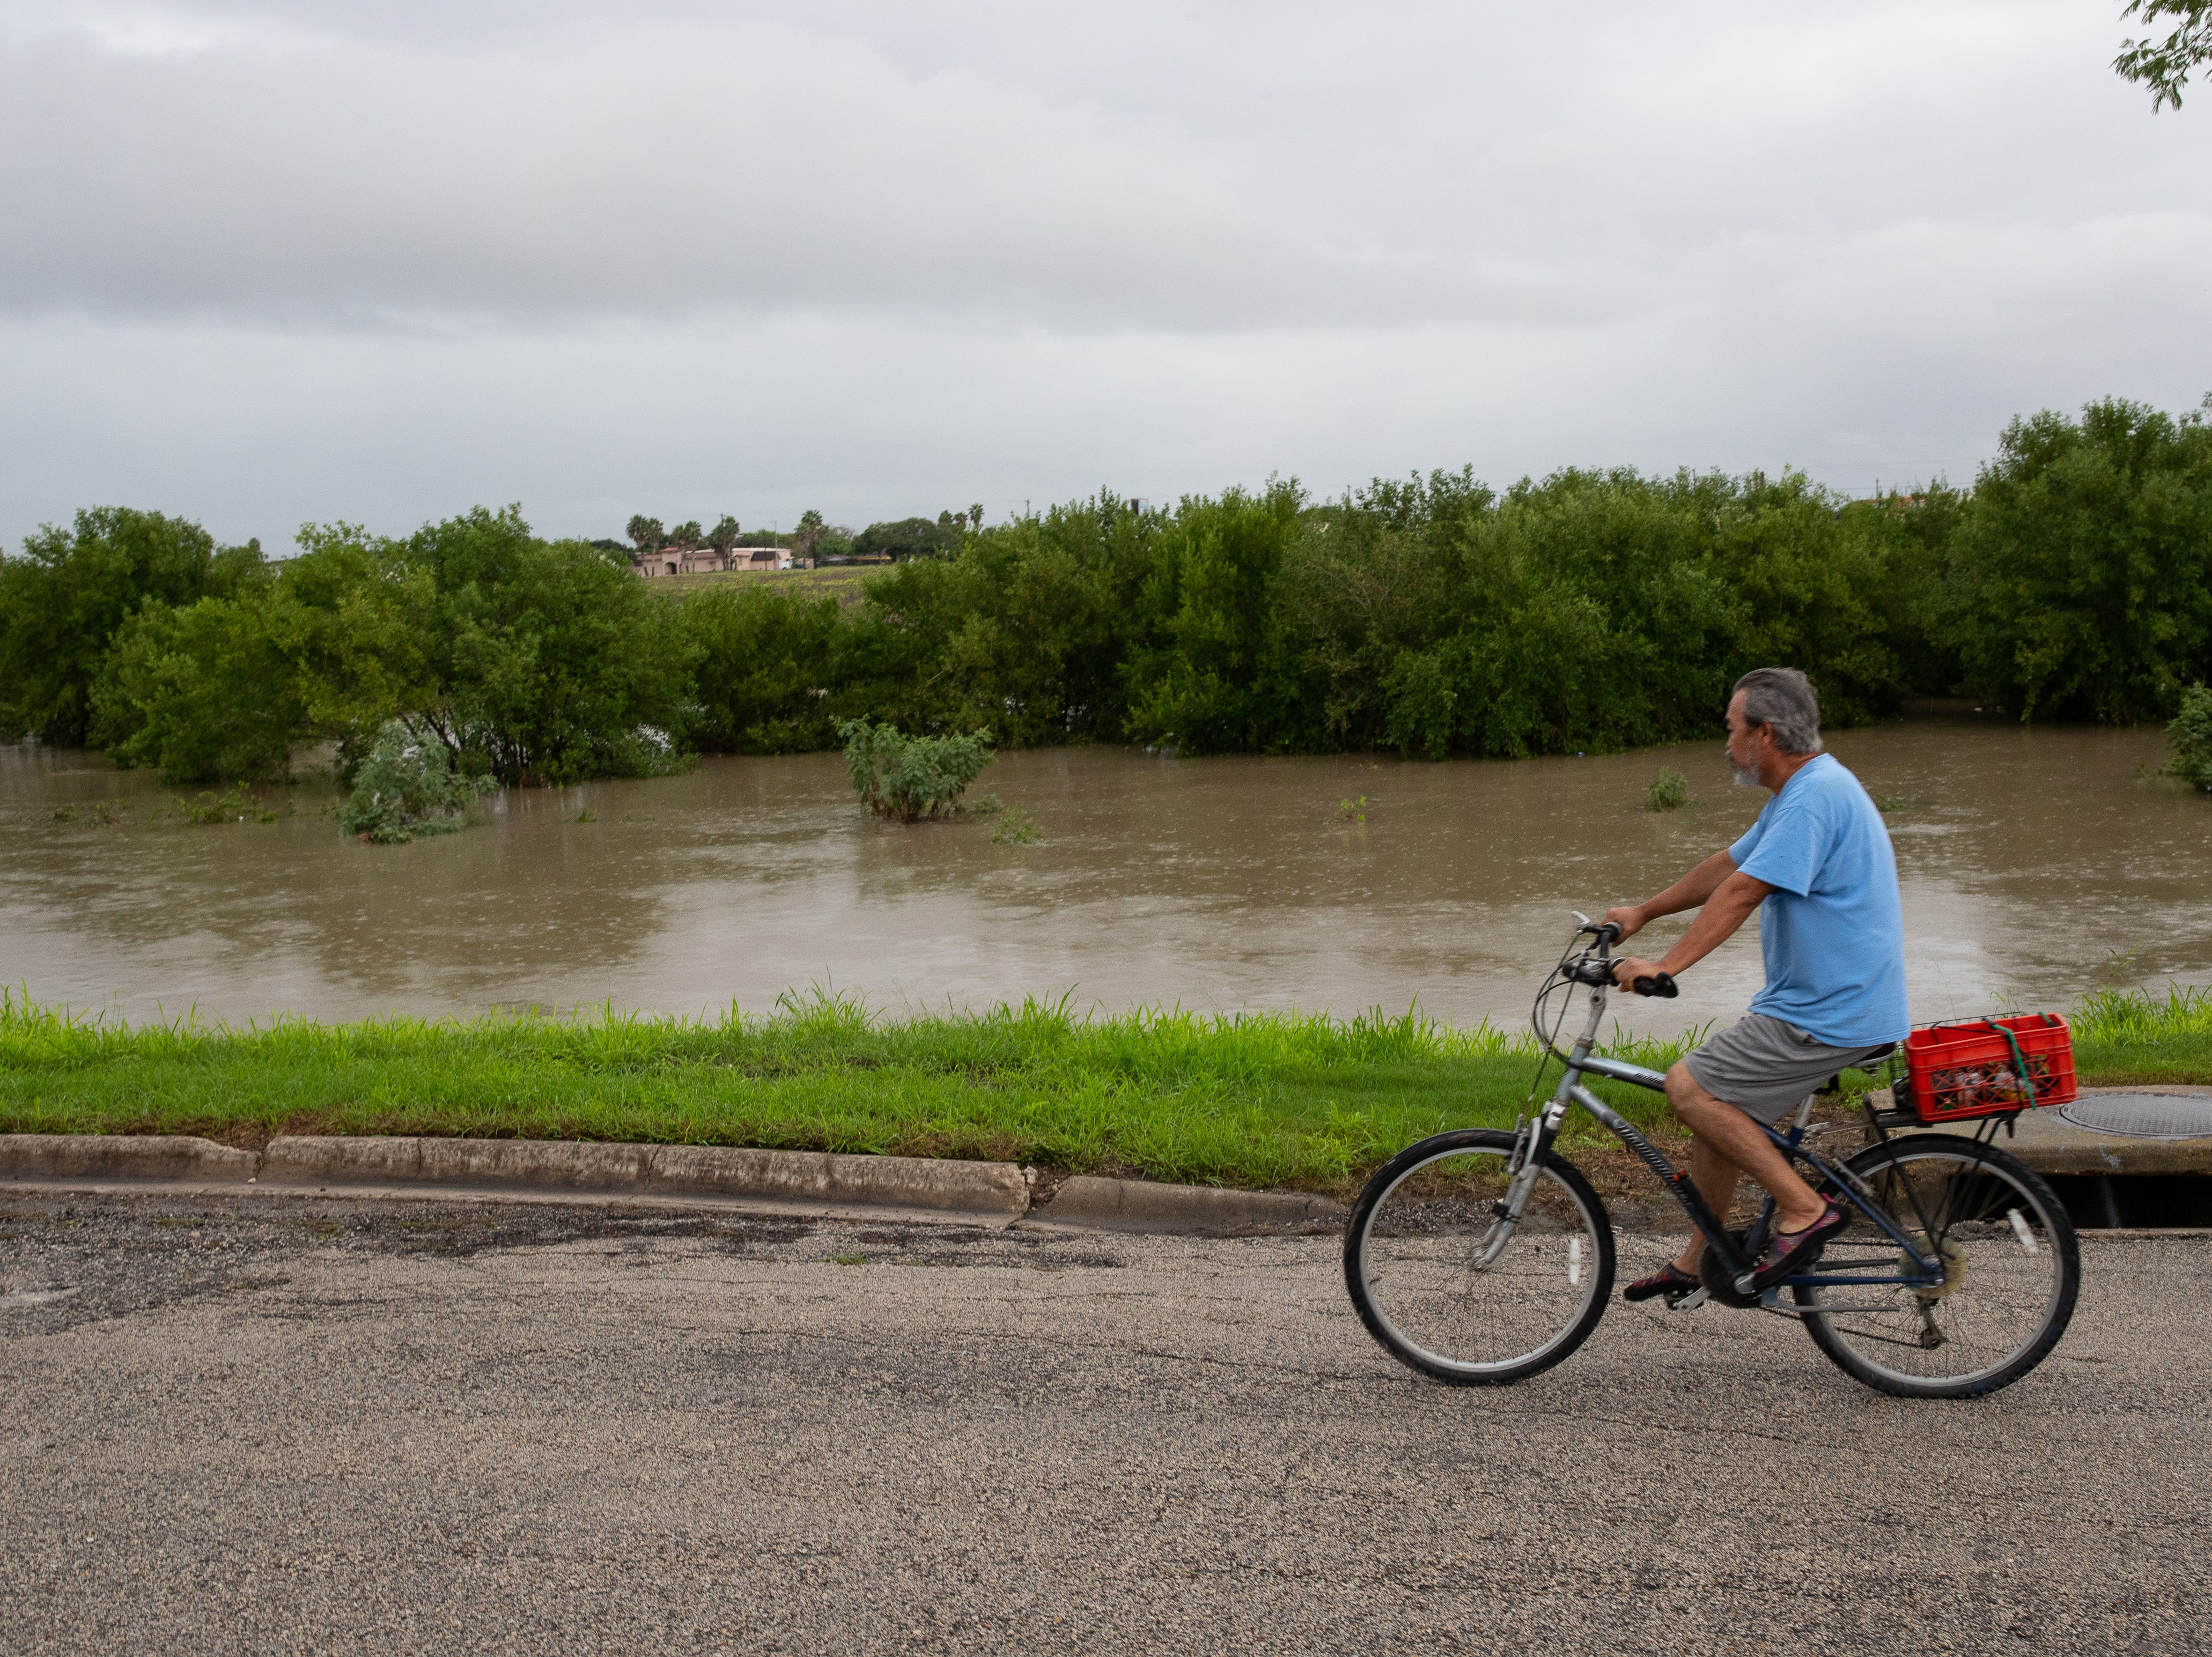 A man on a bike rides past an elevated La Volla creak next to the Las Colonias neighborhood on Saturday, Sept. 15, 2018.